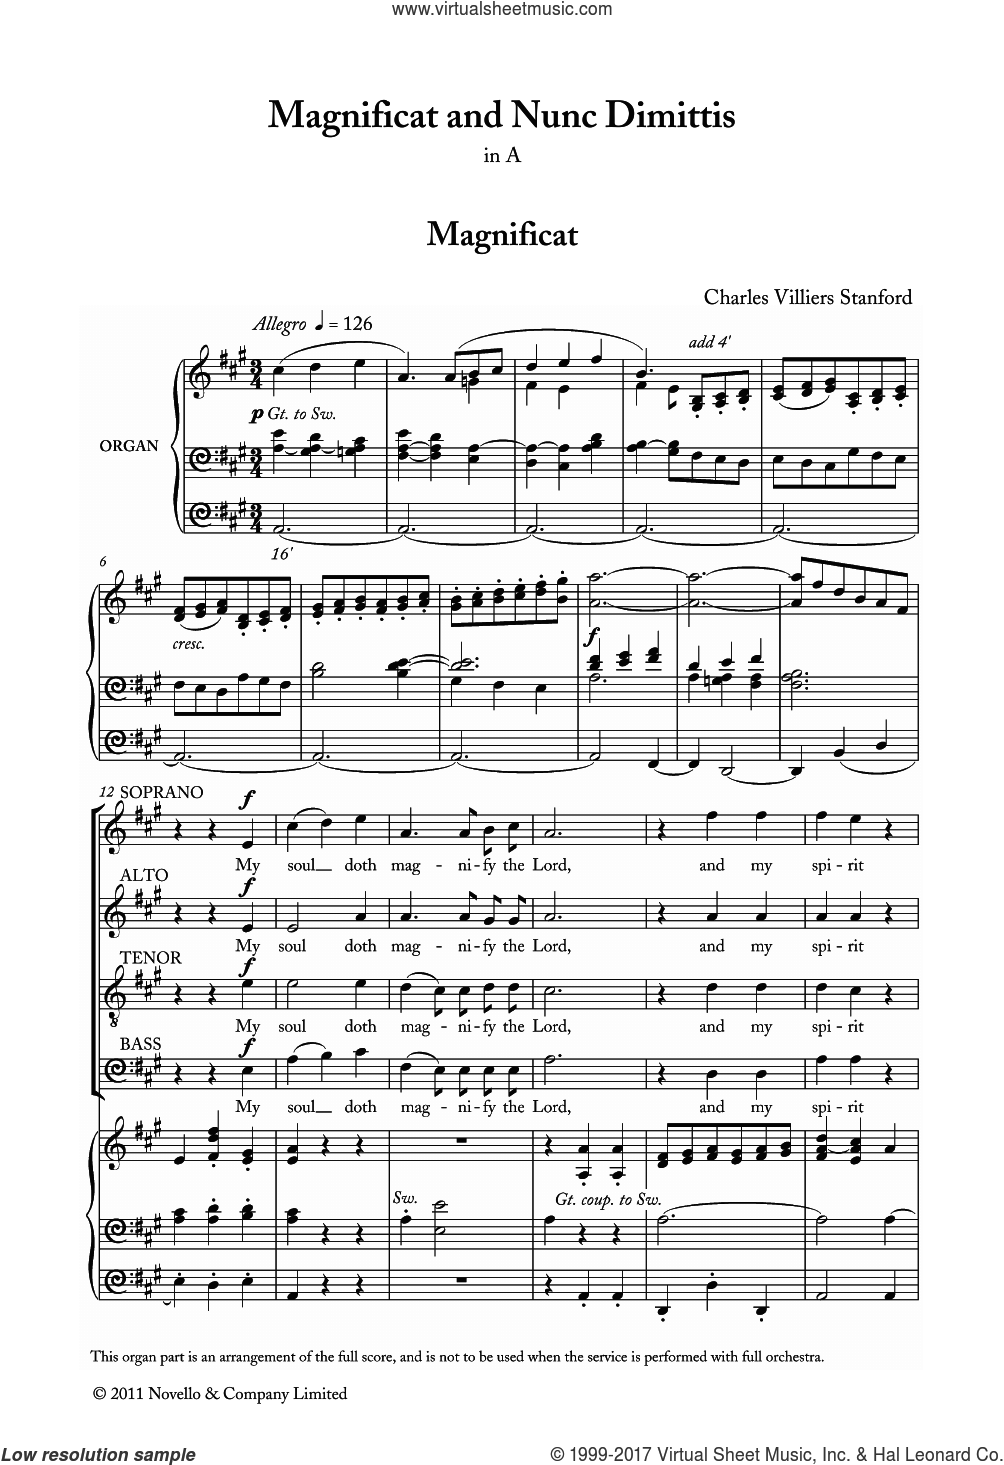 Magnificat And Nunc Dimittis In A sheet music for voice, piano or guitar by Charles Villiers Stanford and Liturgical Text, classical score, intermediate skill level